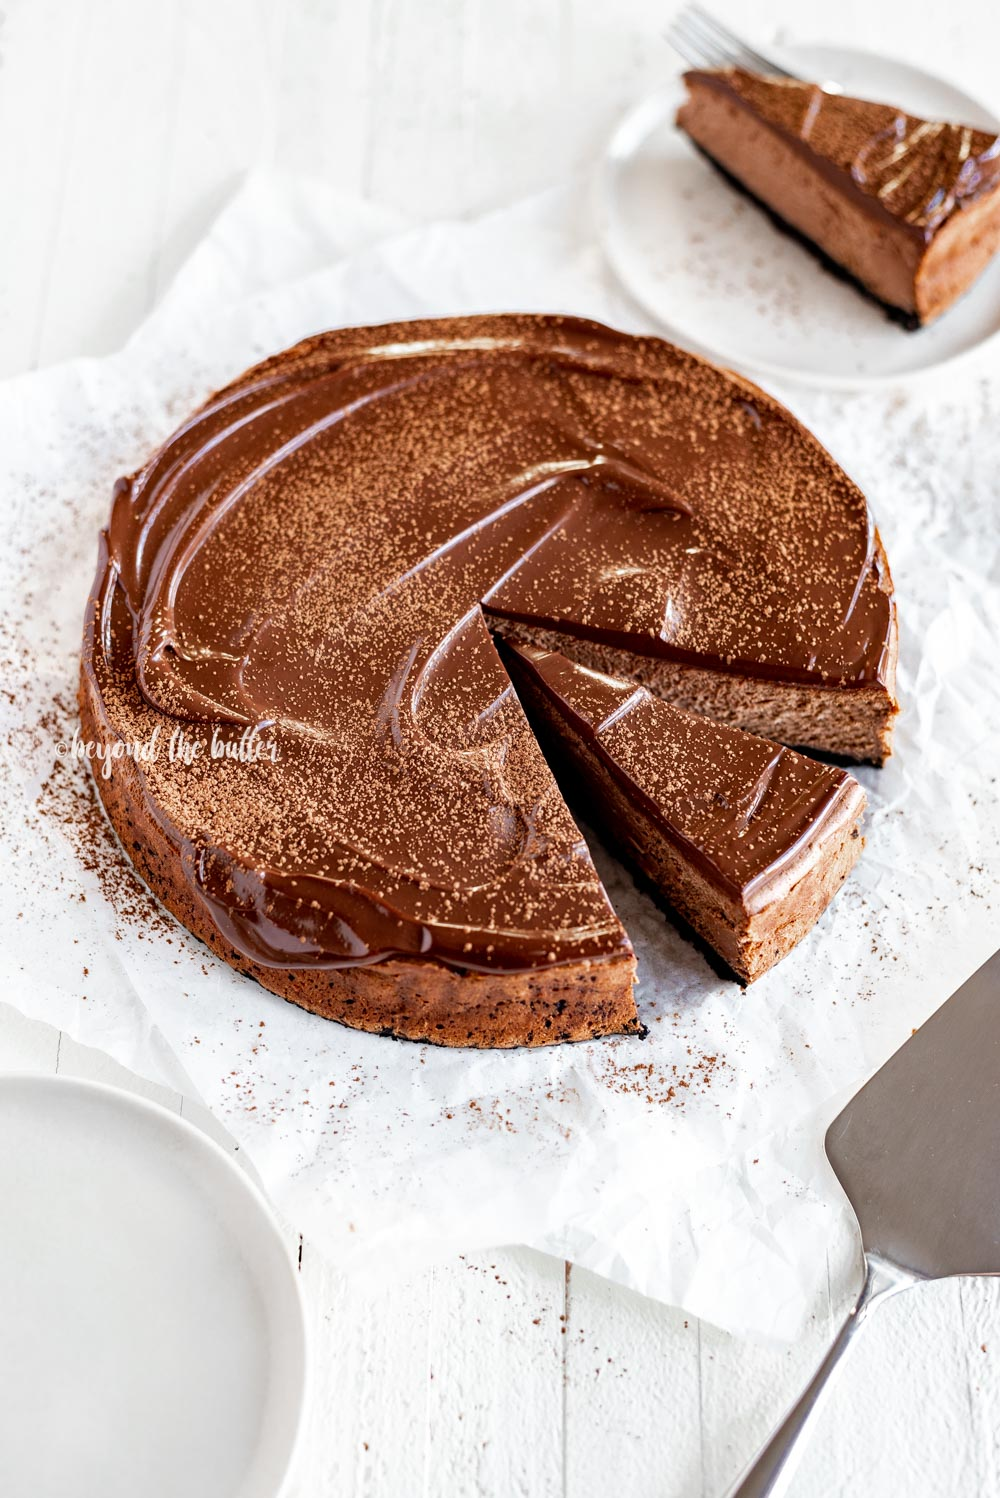 Overhead angled image of Triple Chocolate Mocha Cheesecake dusted with cocoa and a slice removed | All Images © Beyond the Butter, LLC